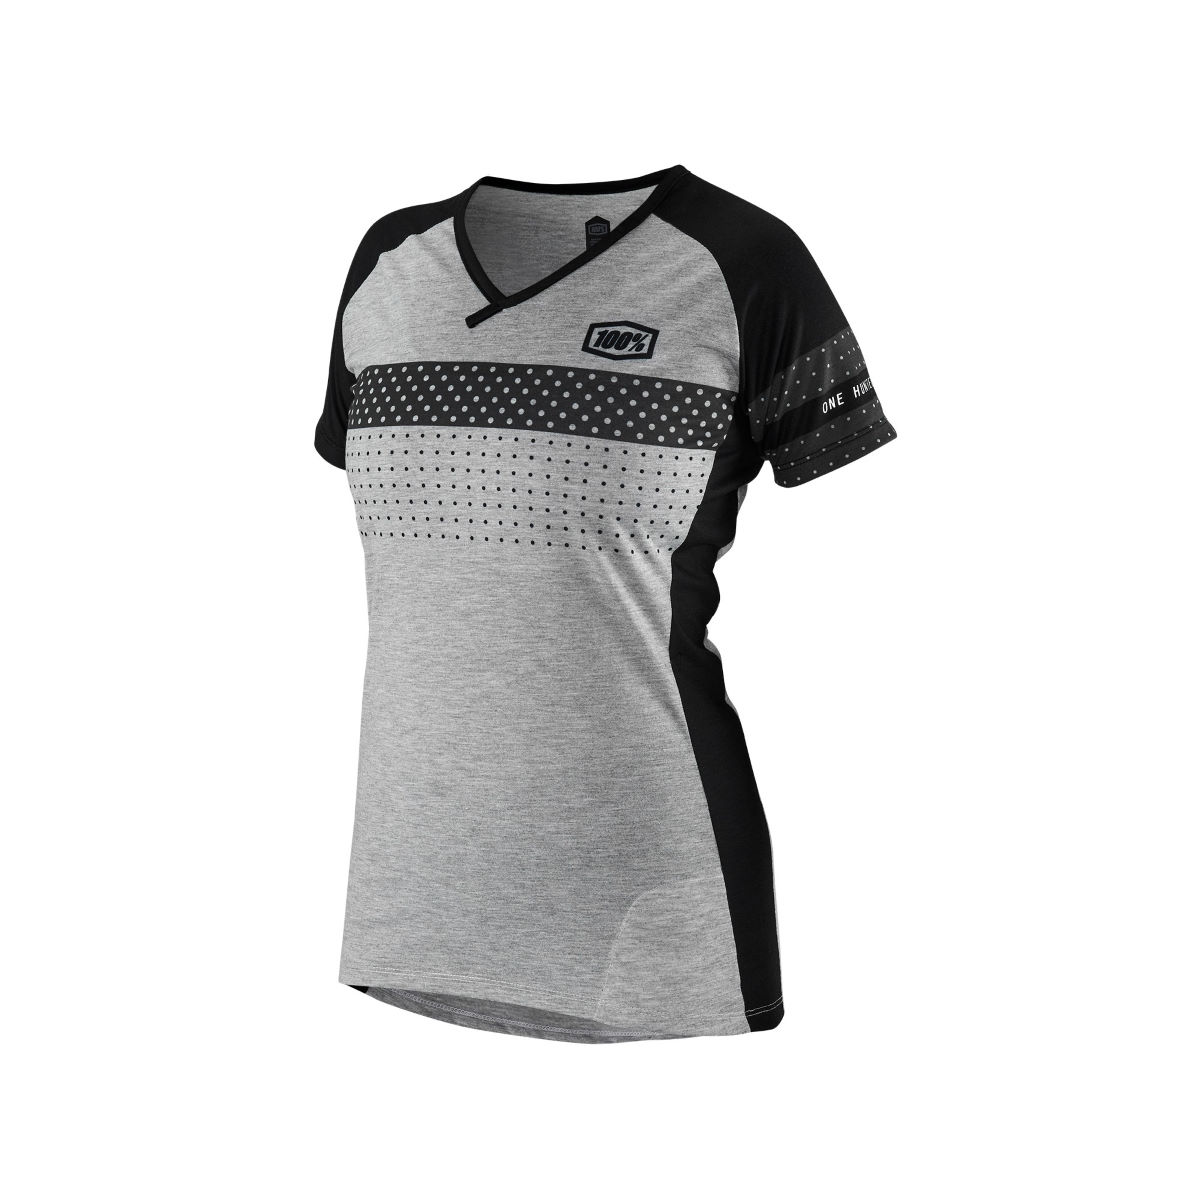 100% Women's Airmatic Jersey   Jerseys